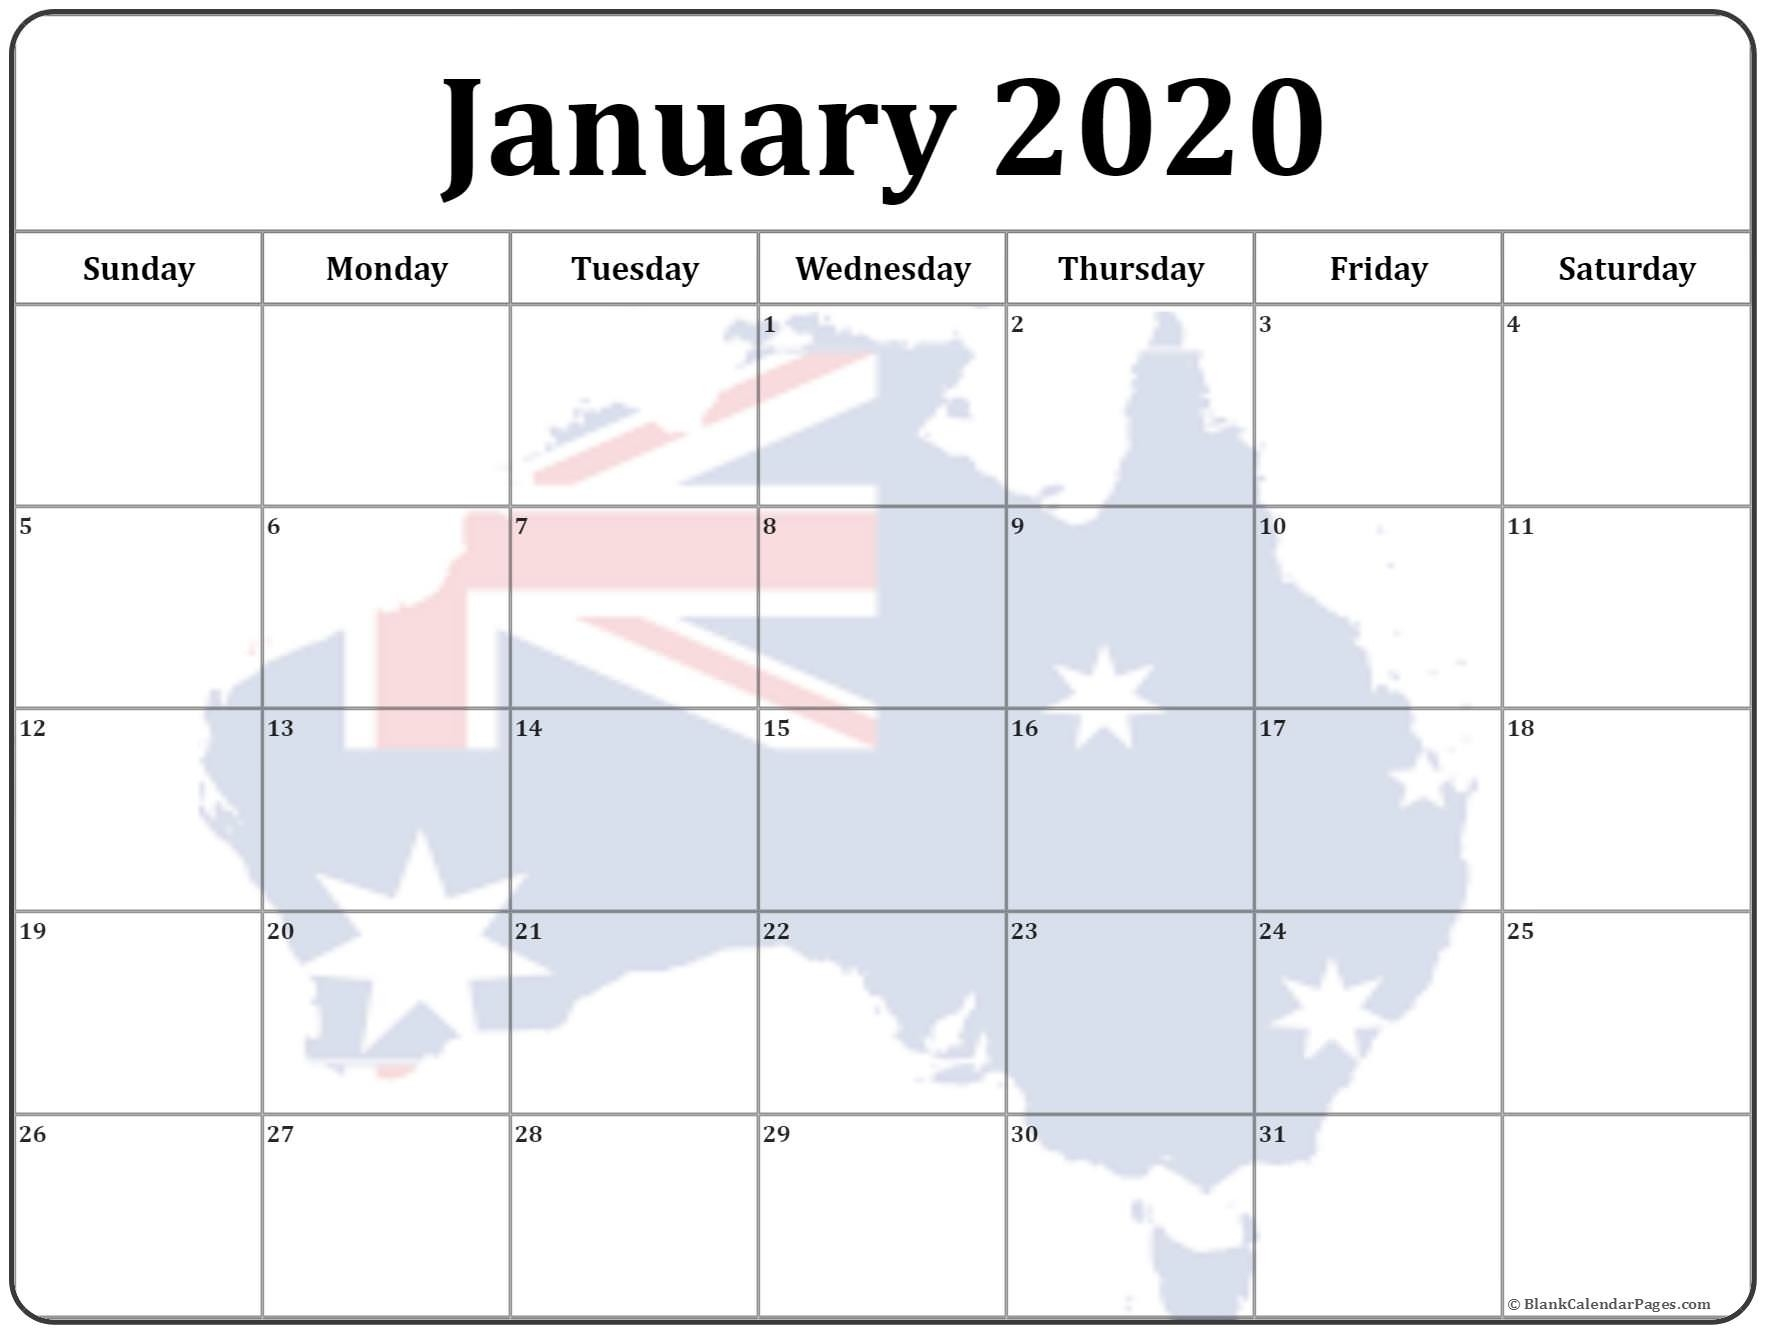 Collection Of January 2020 Photo Calendars With Image Filters.-January 2020 Calendar Australia